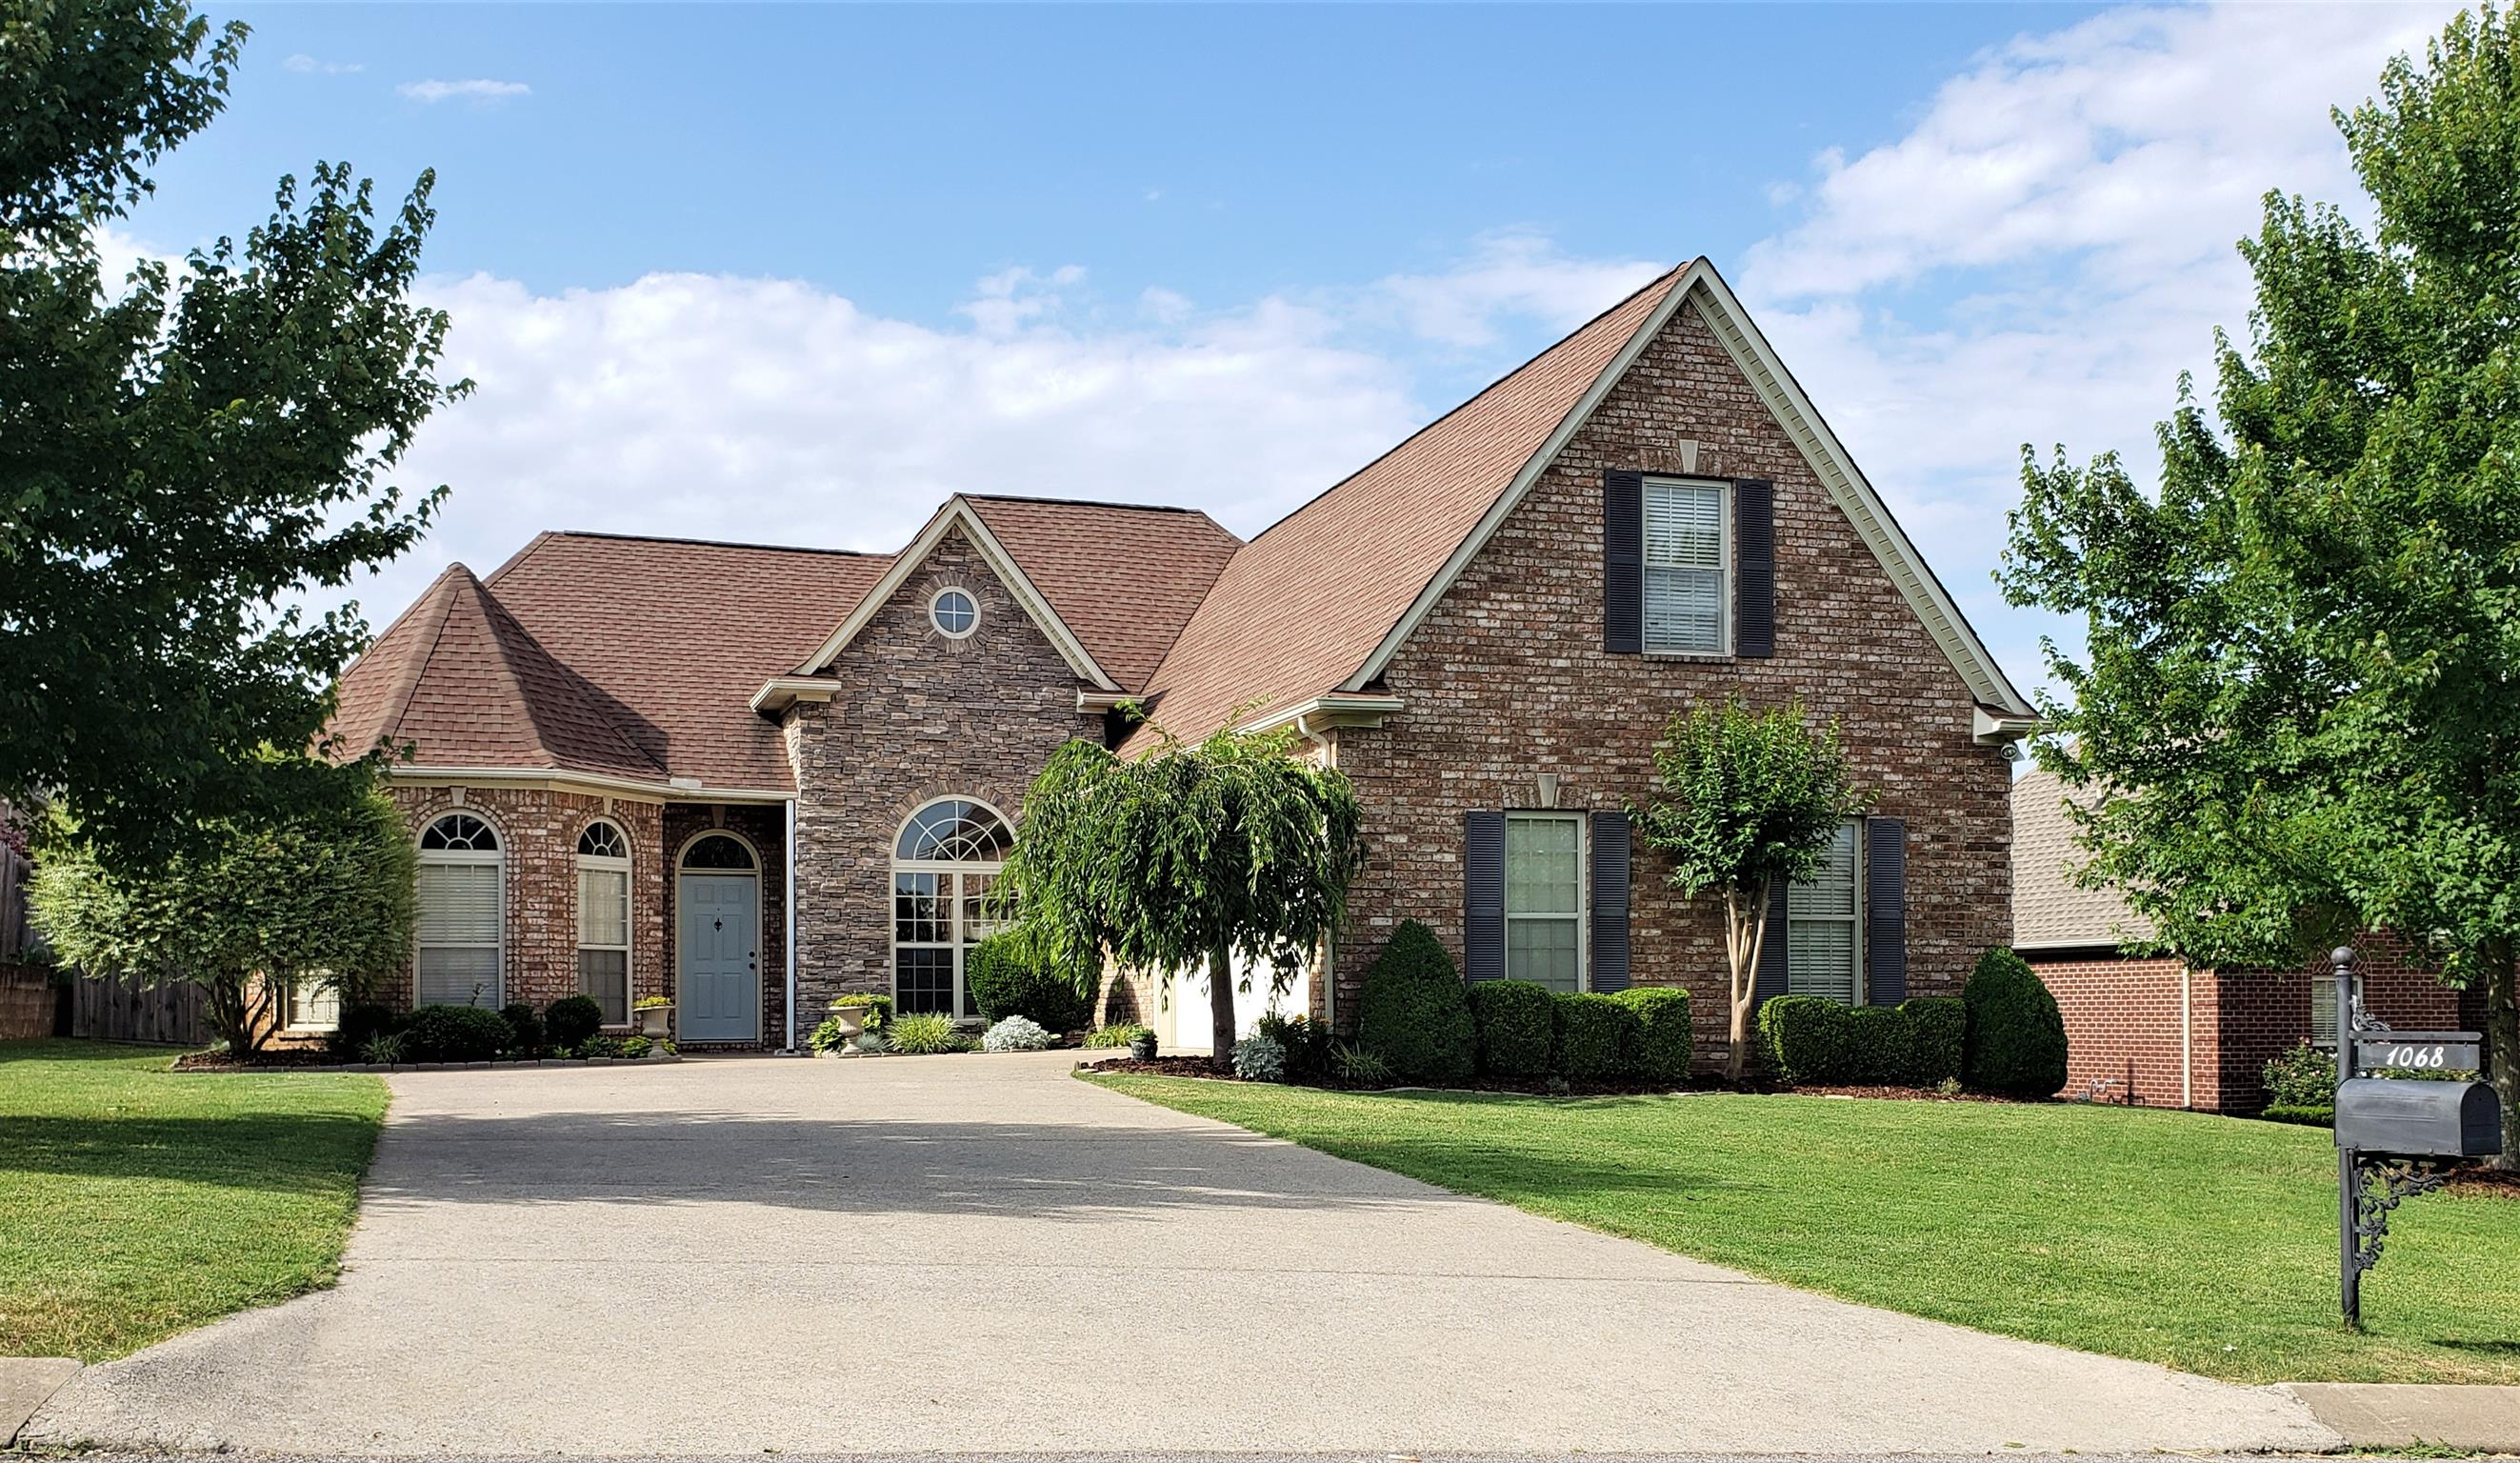 1068 Neal Crest Cir 37174 - One of Spring Hill Homes for Sale